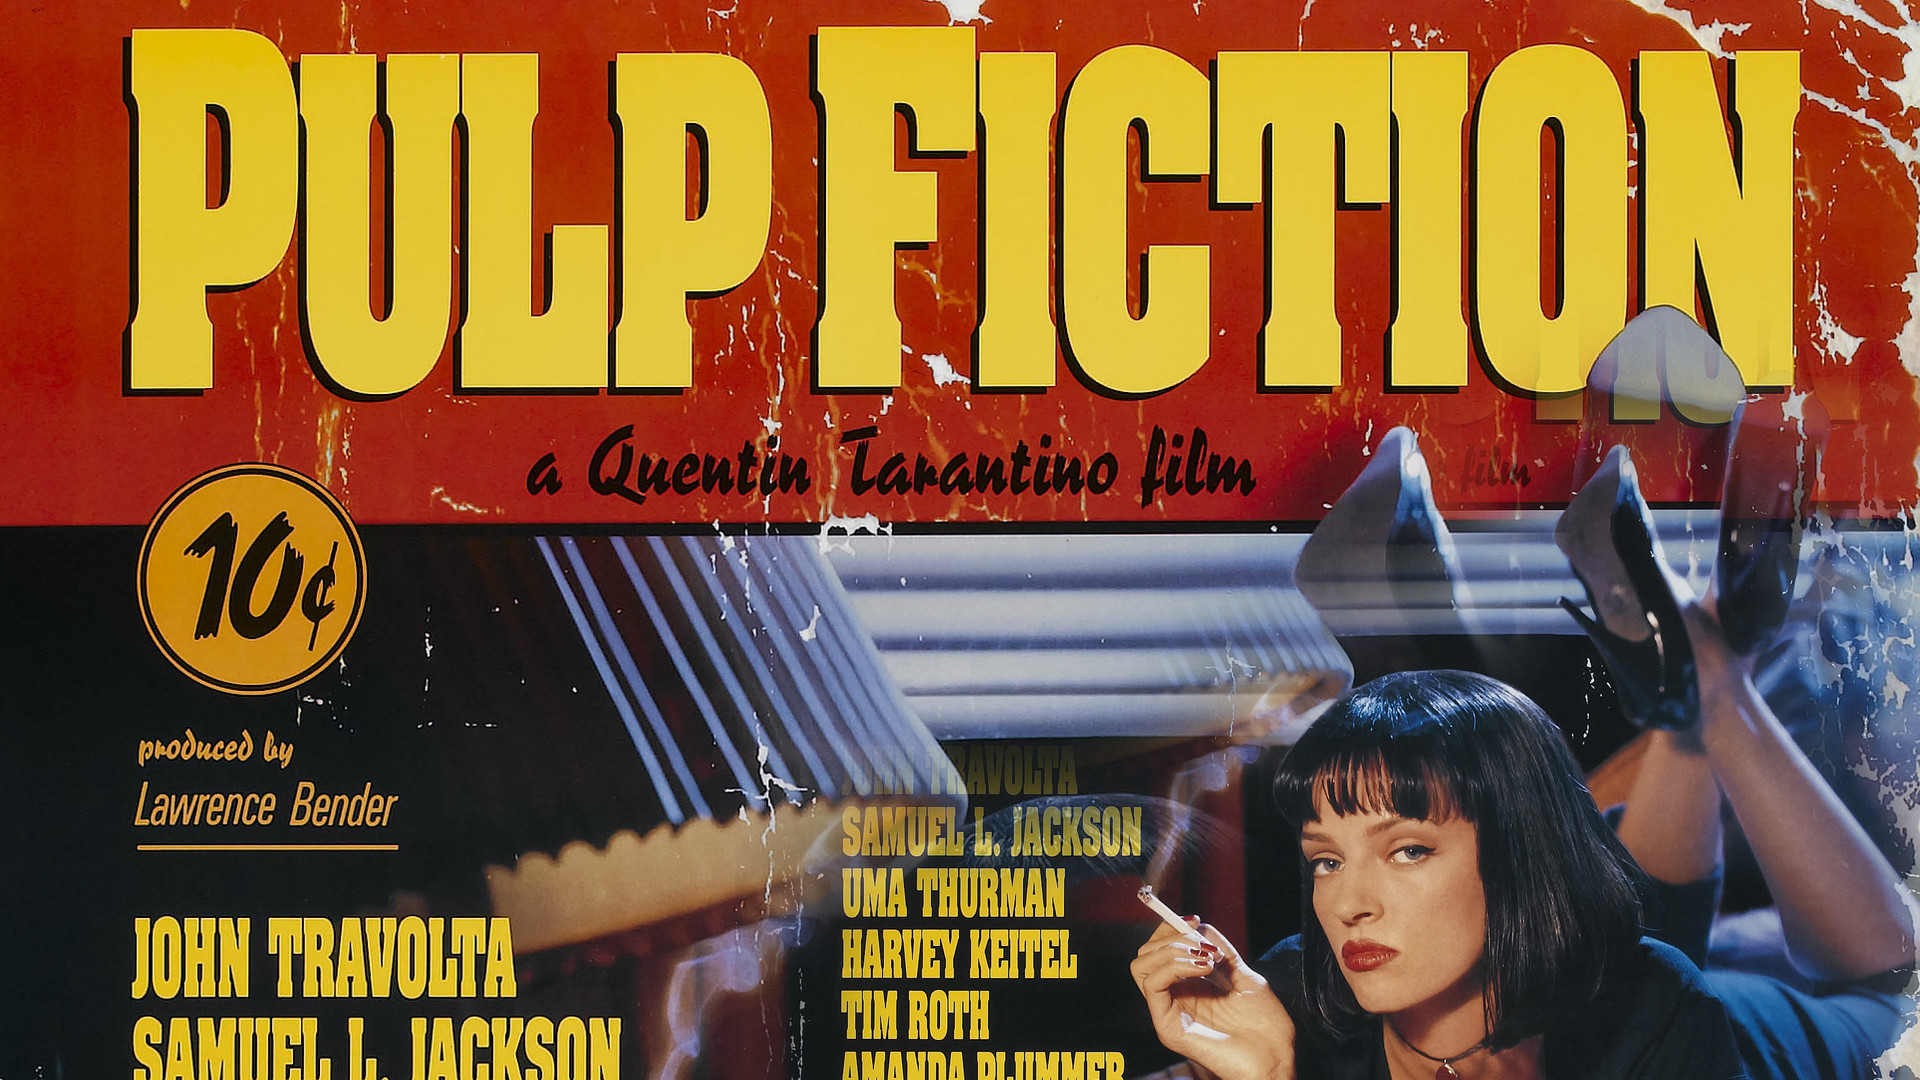 … Pulp Fiction Xbox 360 Dashboard Wallpaper by Udder-Juice